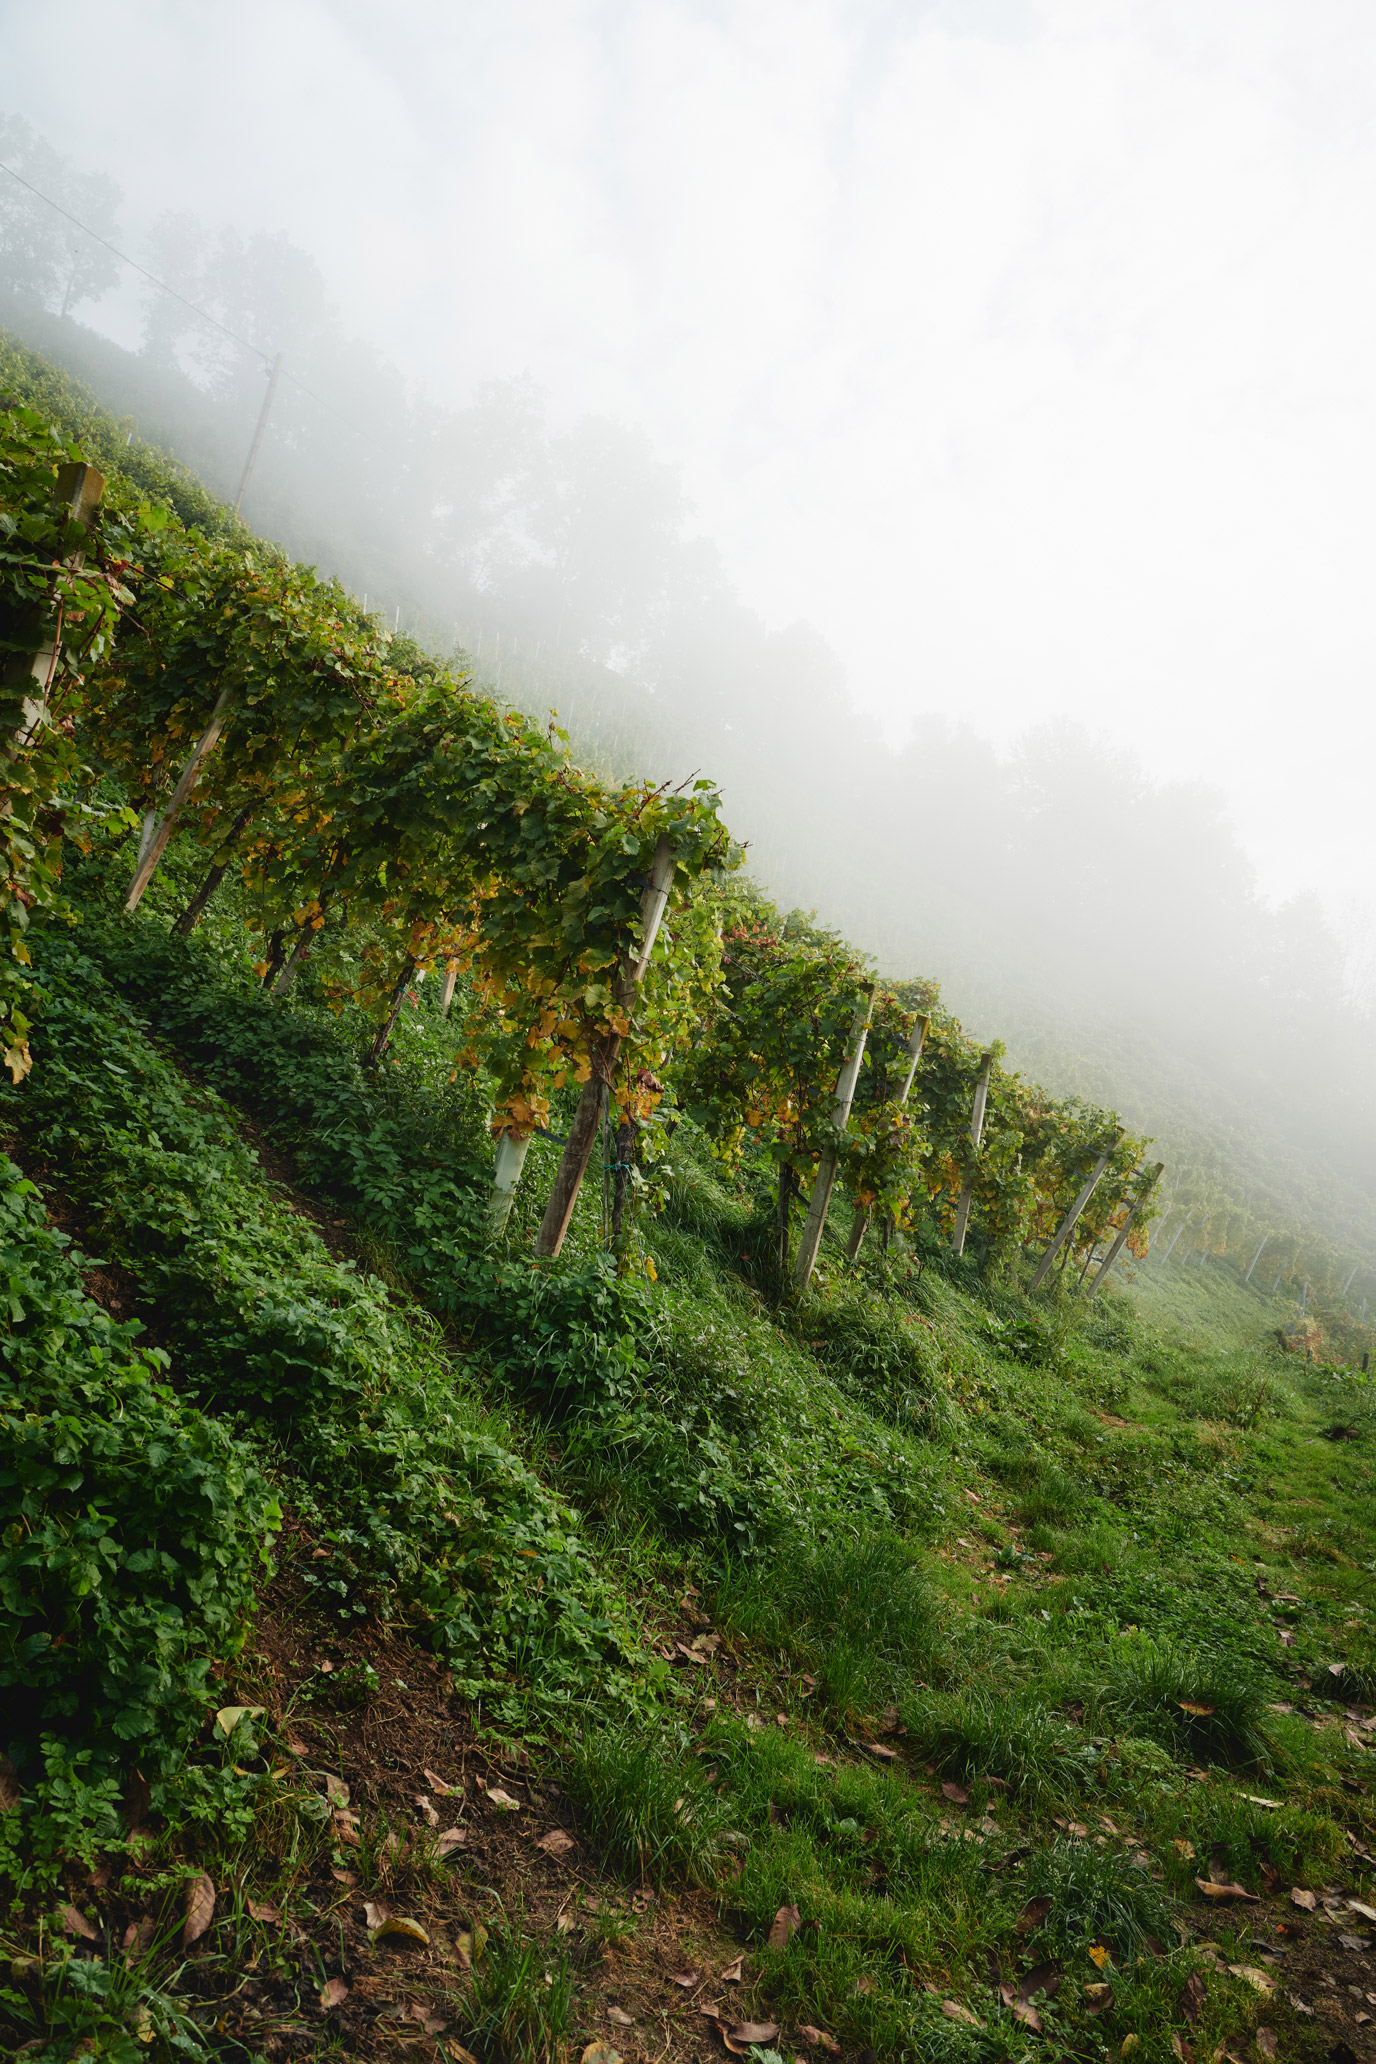 stk-wein-wohlmuth-wine-steep-hill-fog